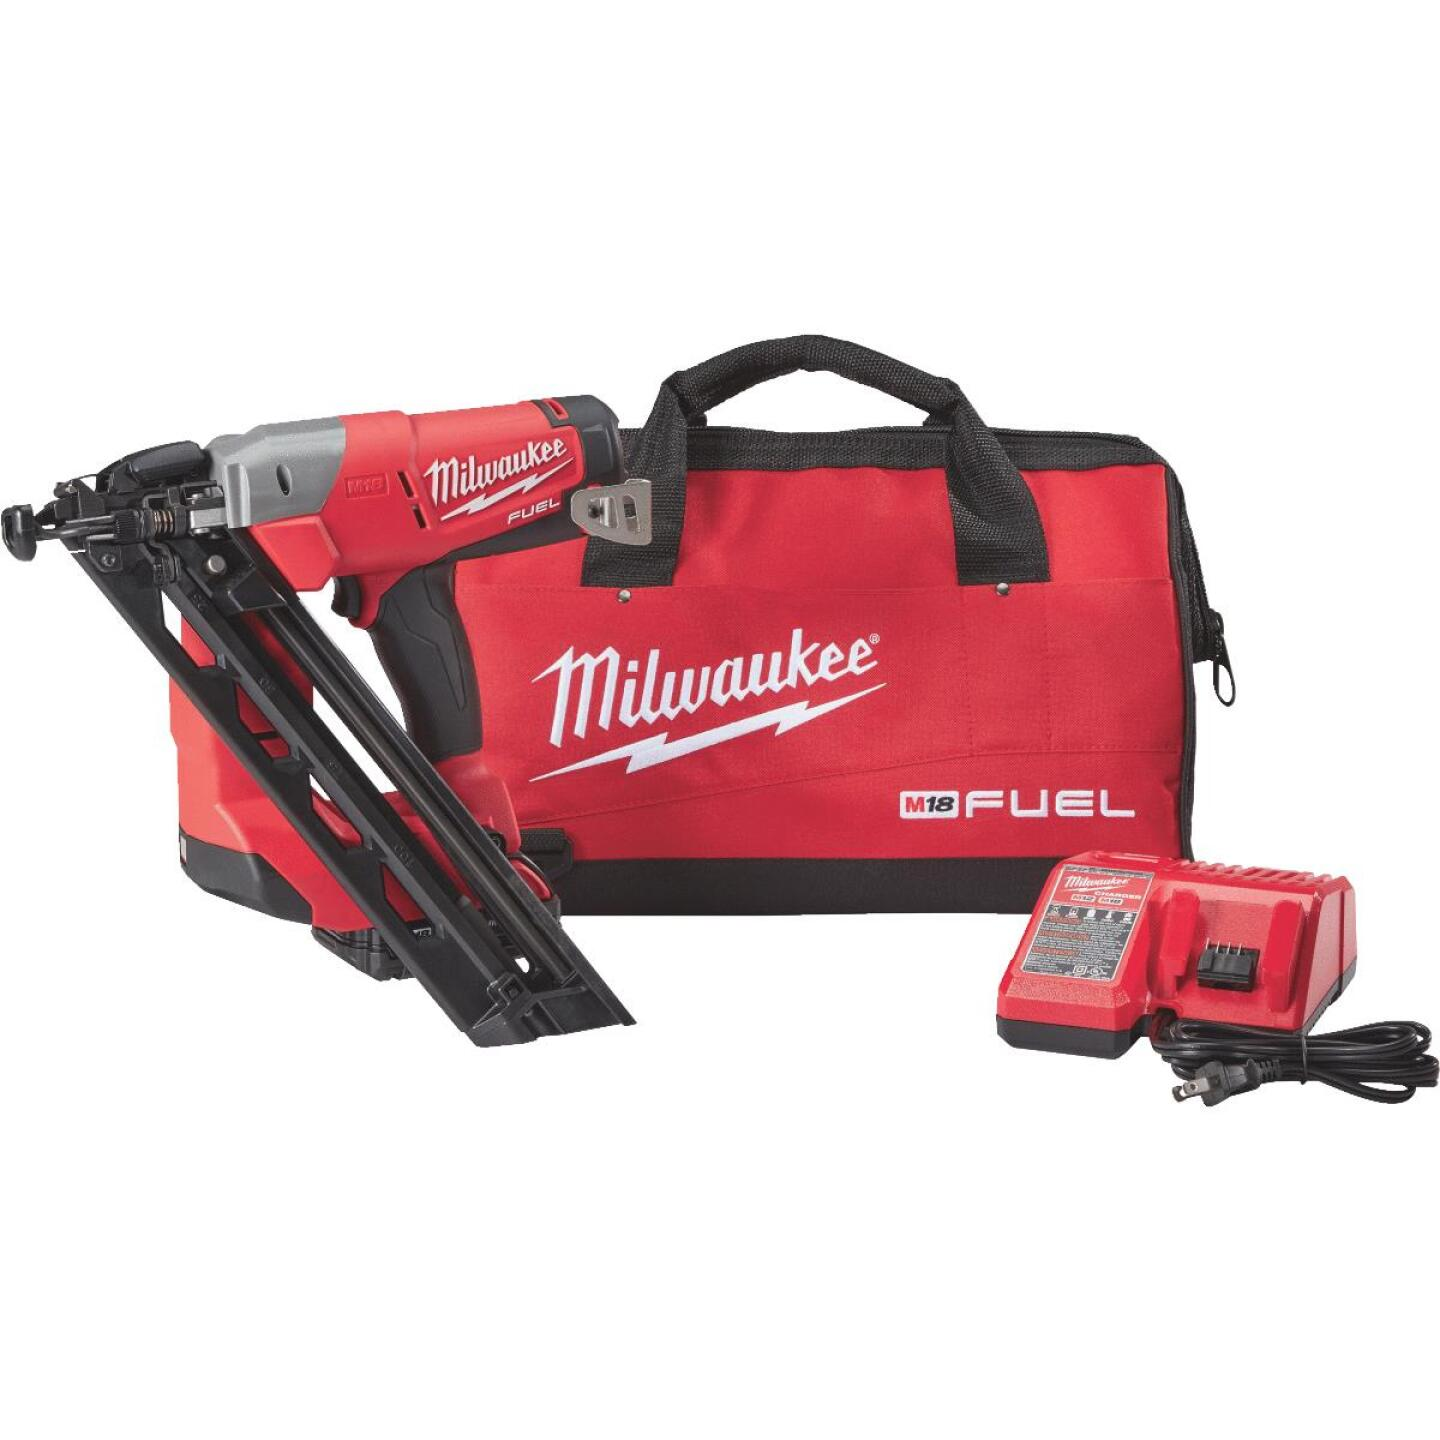 Milwaukee M18 FUEL 18-Volt Lithium-Ion Brushless 15-Gauge 2-1/2 In. Angled Cordless Finish Nailer Kit Image 1